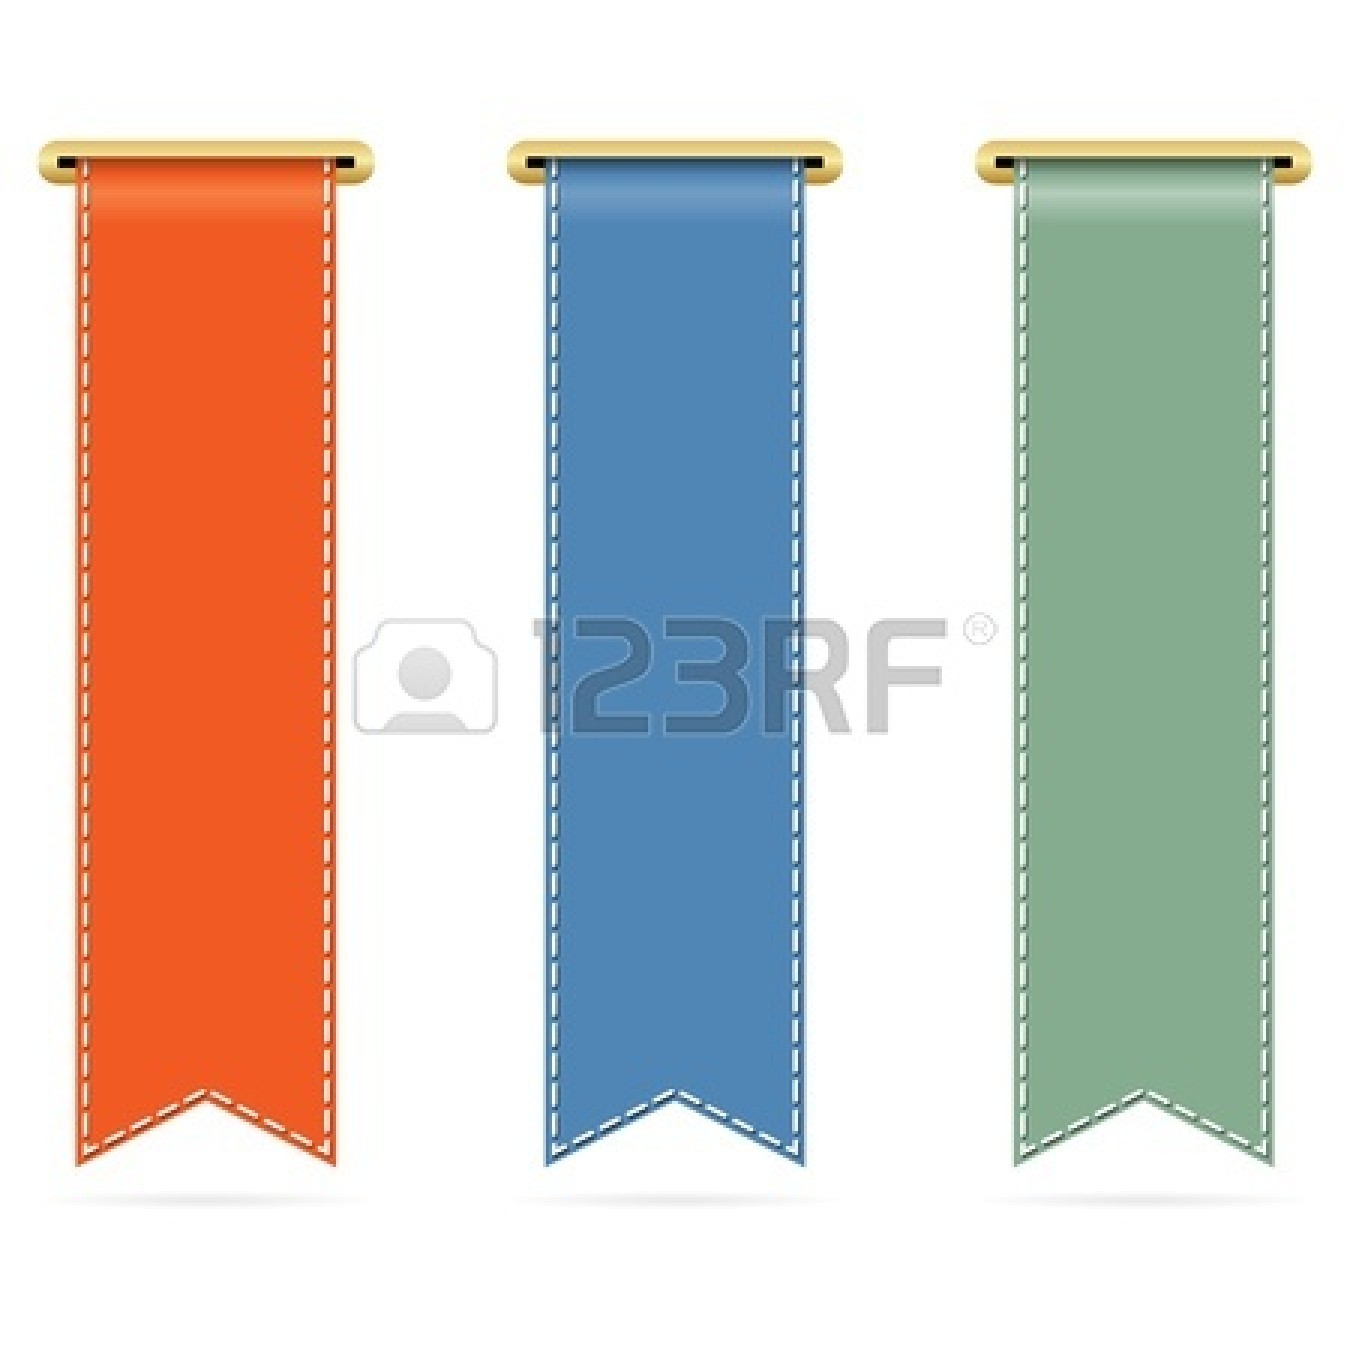 Vertical Ribbon Banner Clipart | Clipart Panda - Free Clipart Images